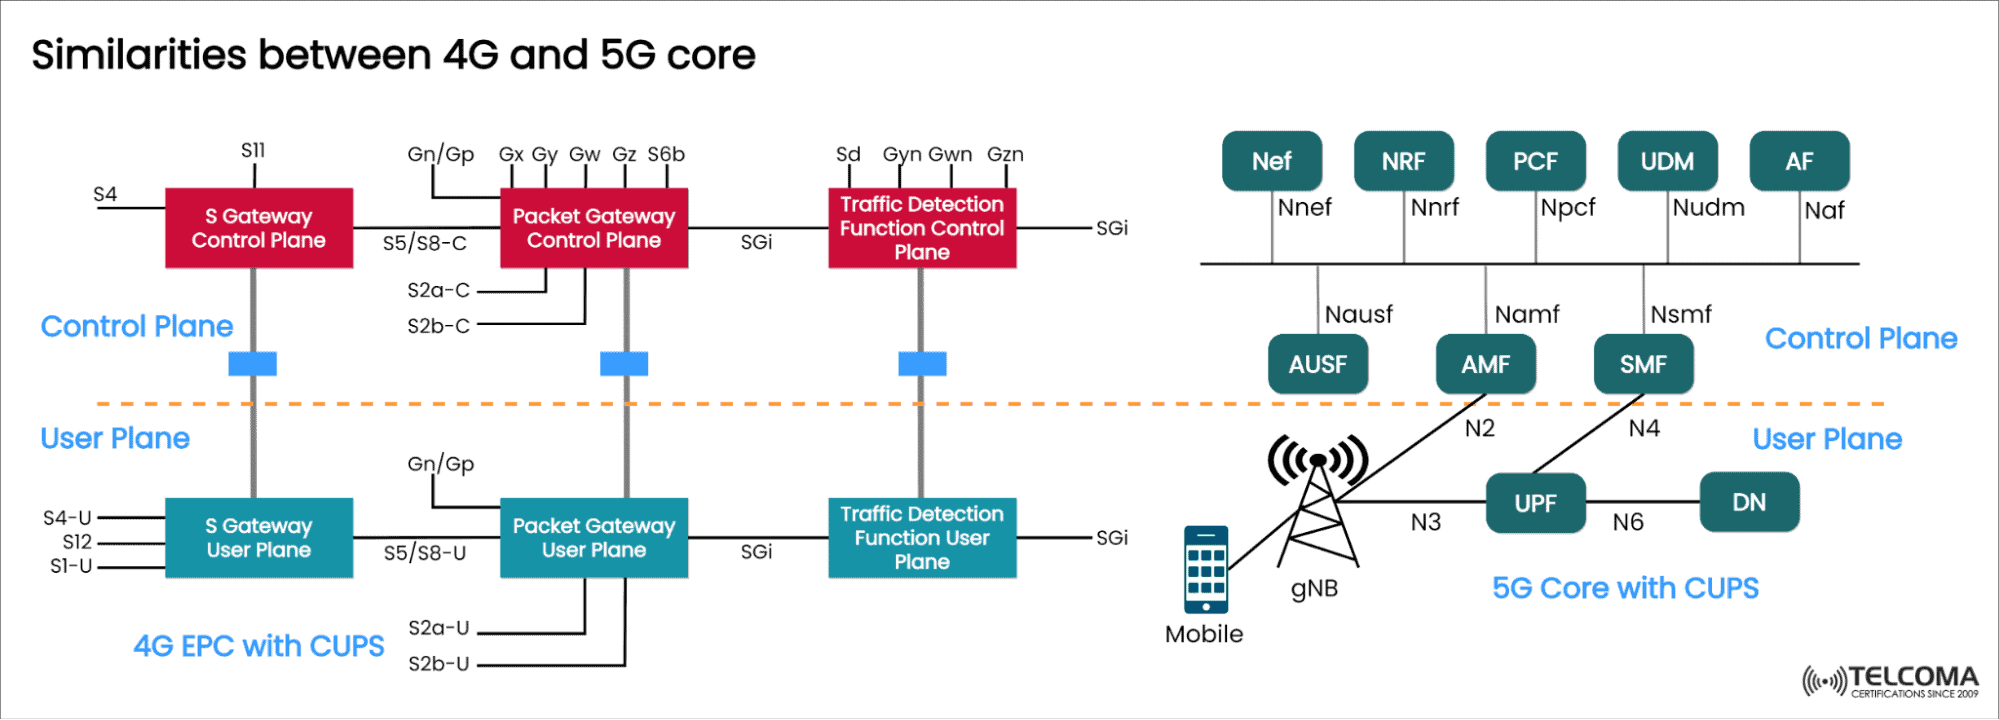 similarities between 4g and 5g core